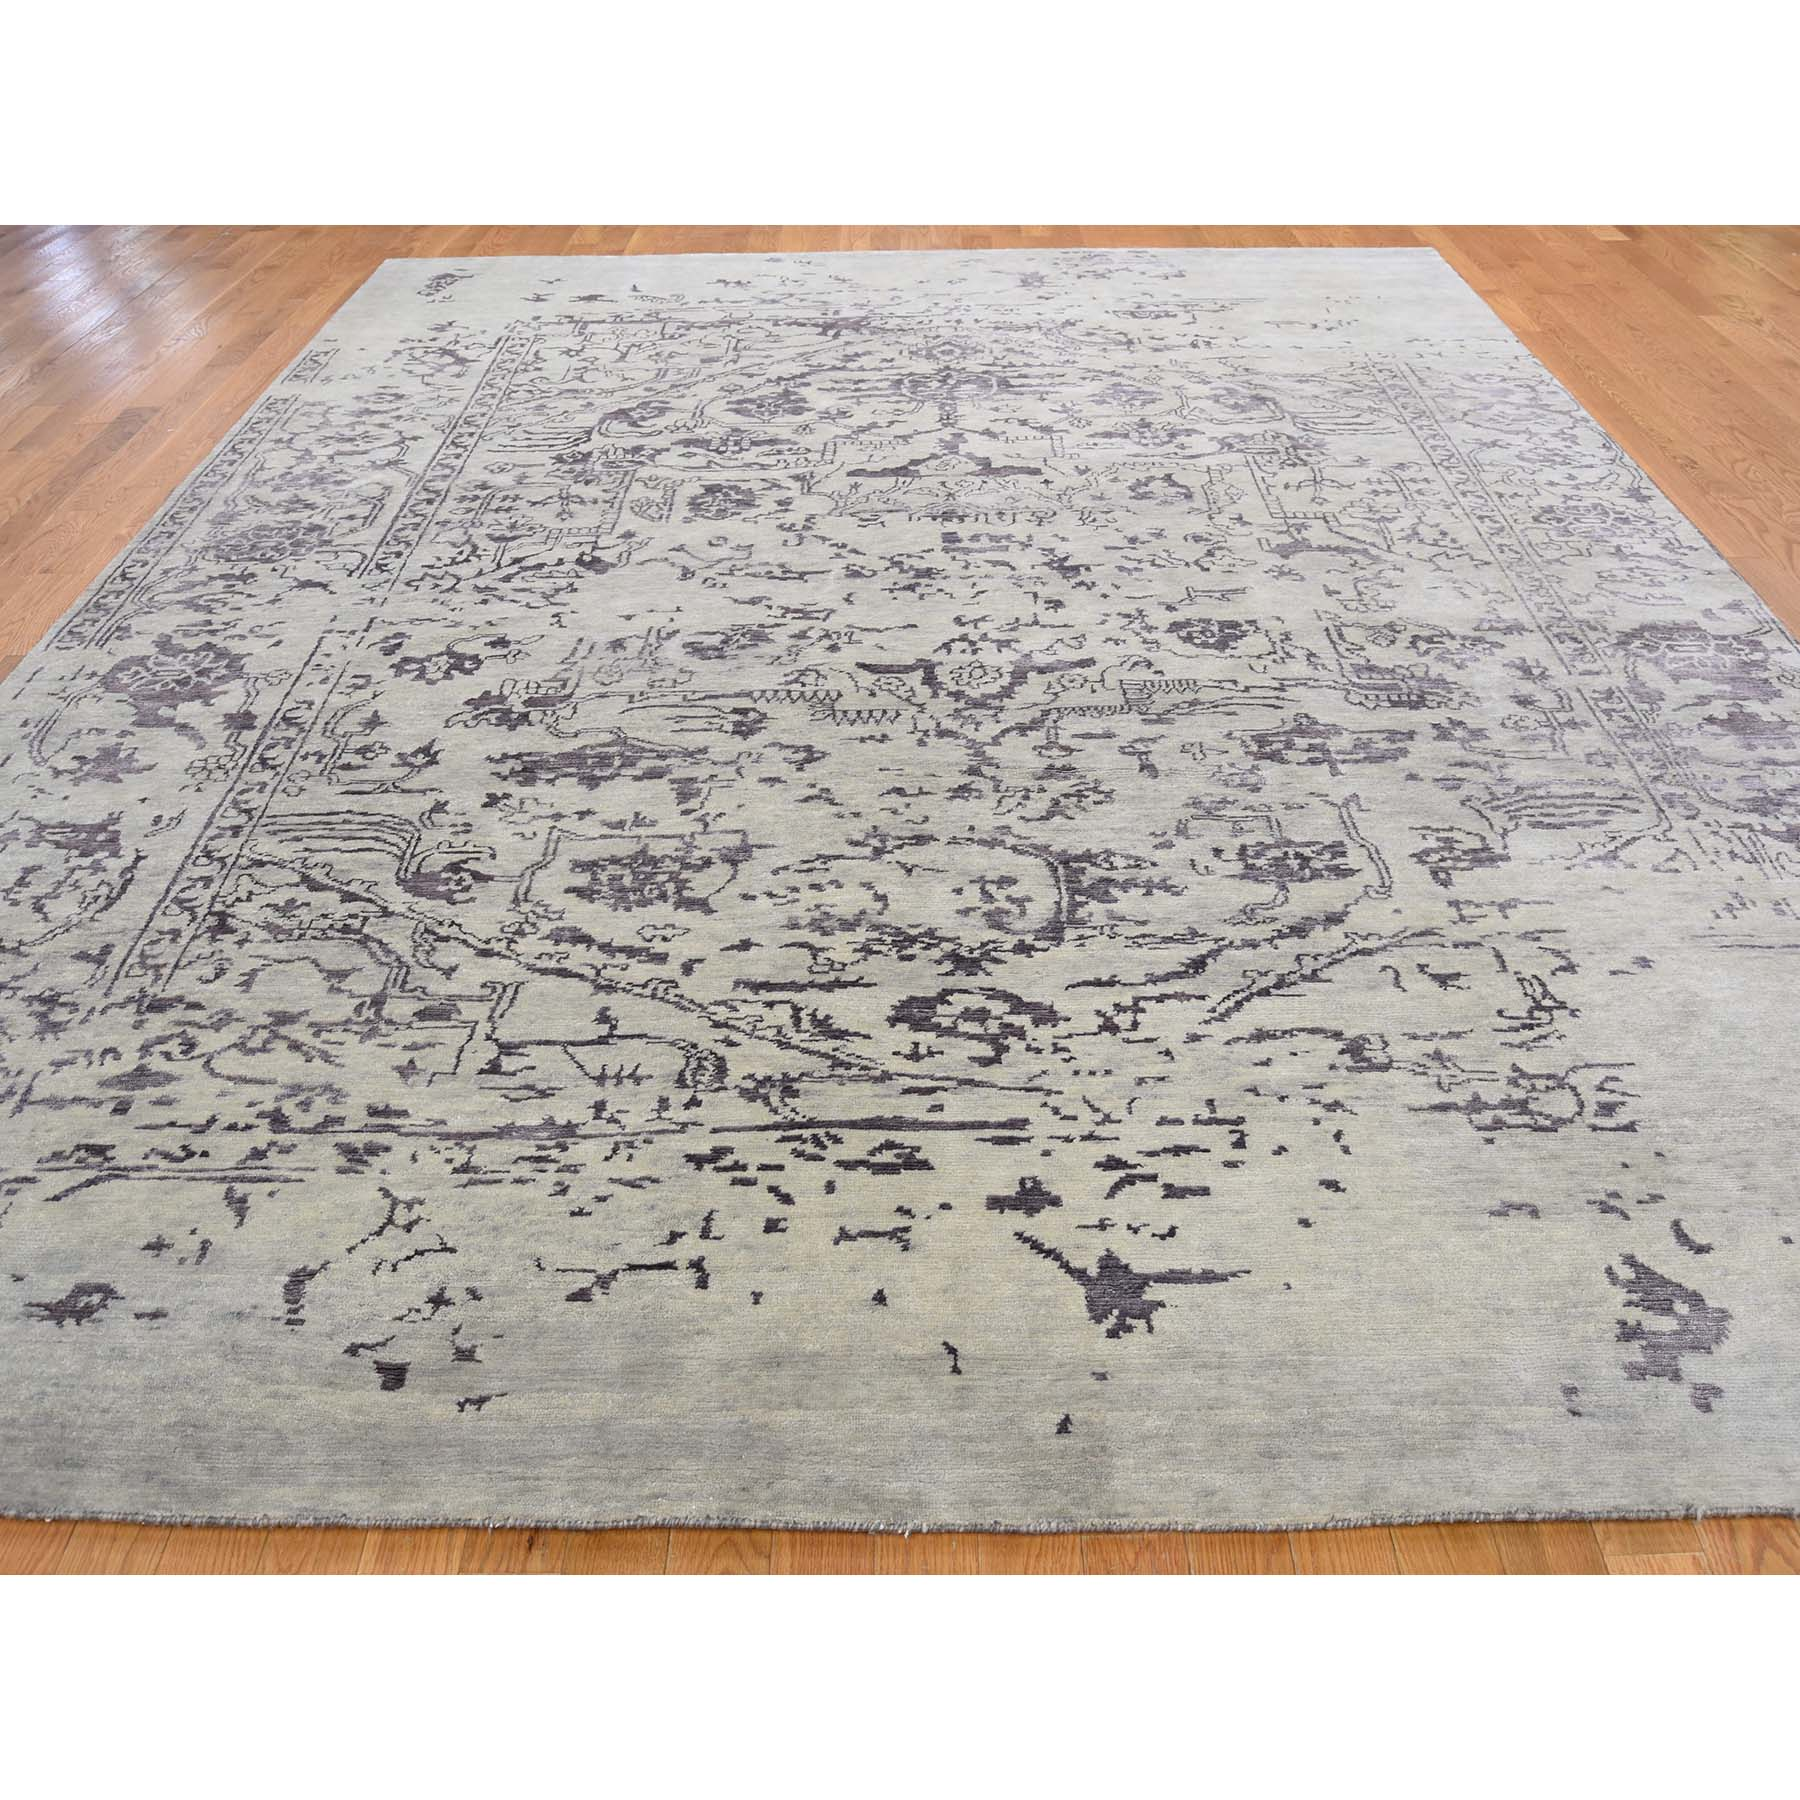 9-1 x12- Wool and Silk Tabriz Broken Design Oriental Rug Hand Knotted